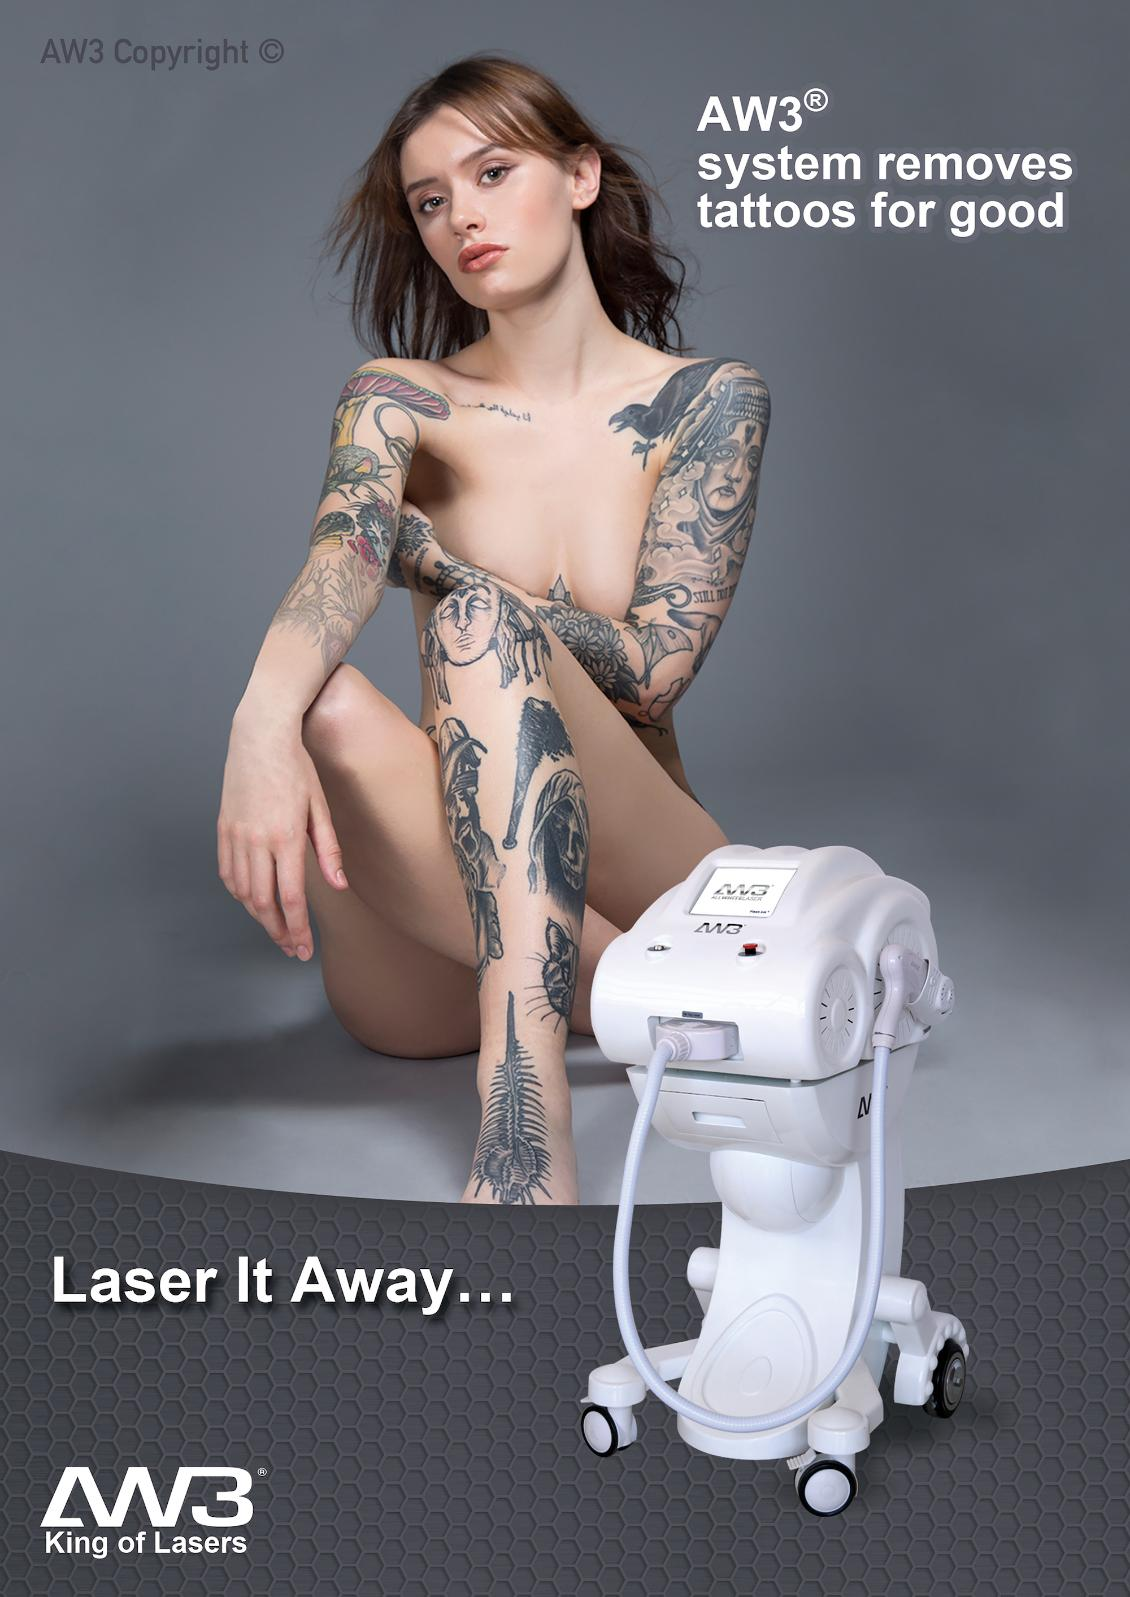 tattoo, wrinkle and thread vein removal